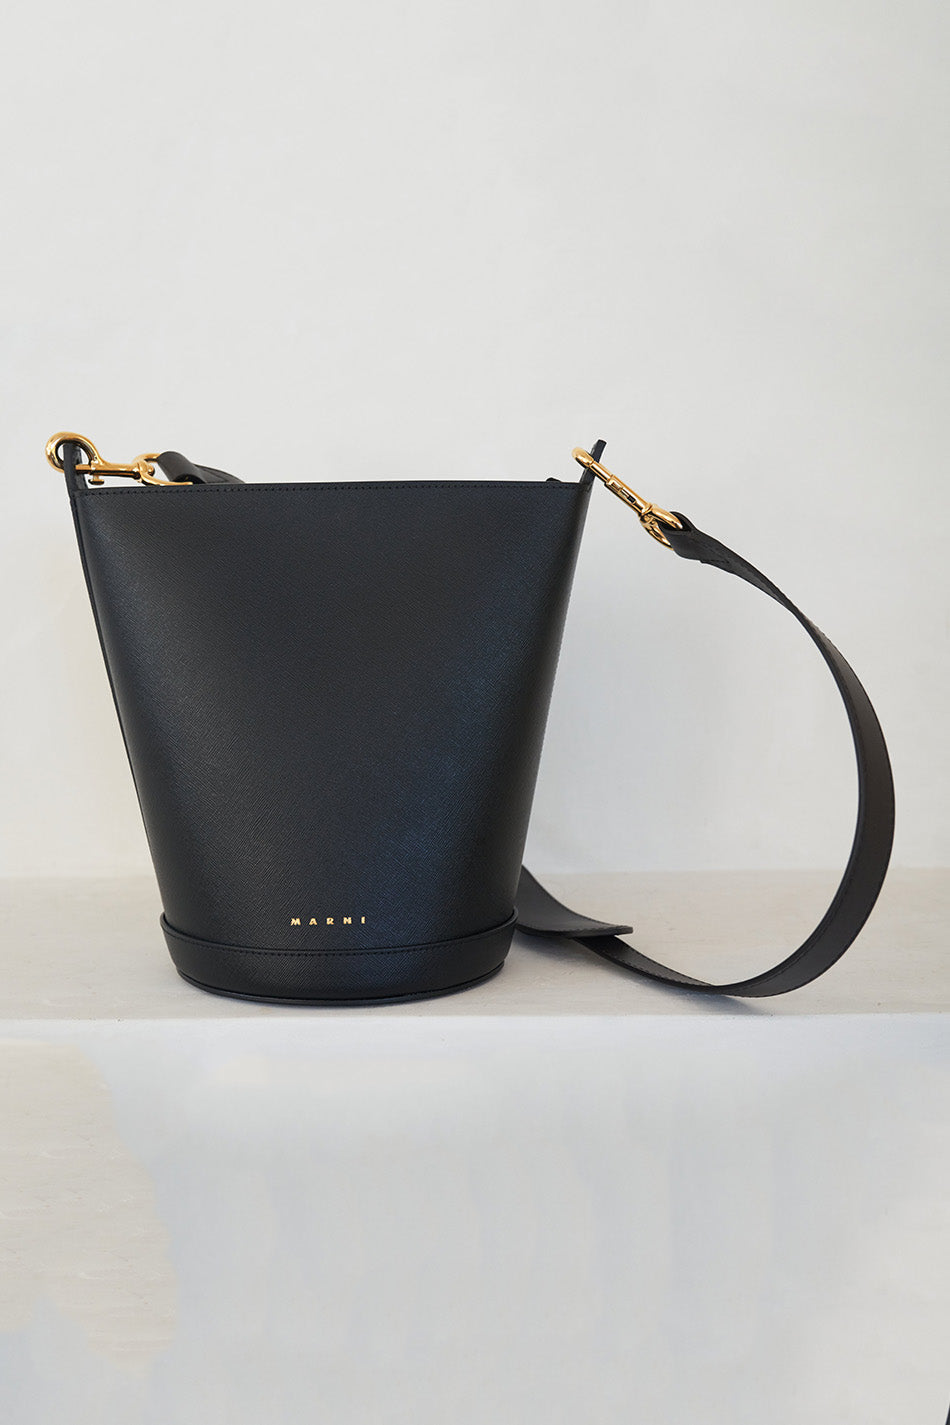 MARNI - depot bucket bag, black